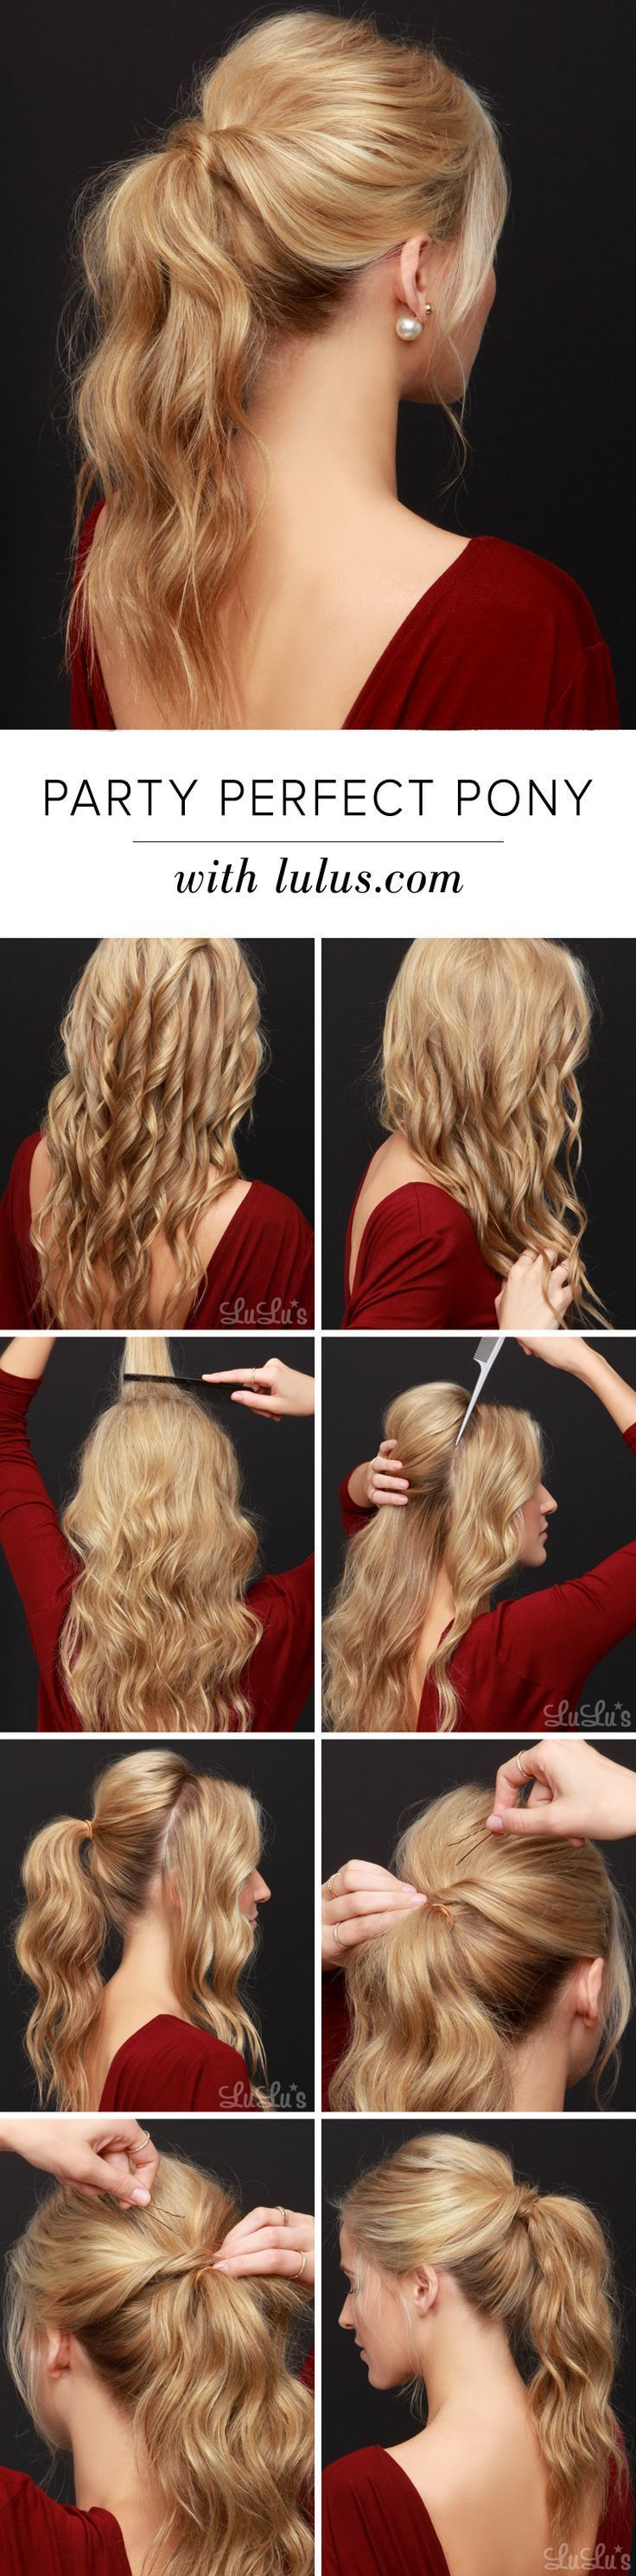 196 best Easy hairstyles images on Pinterest